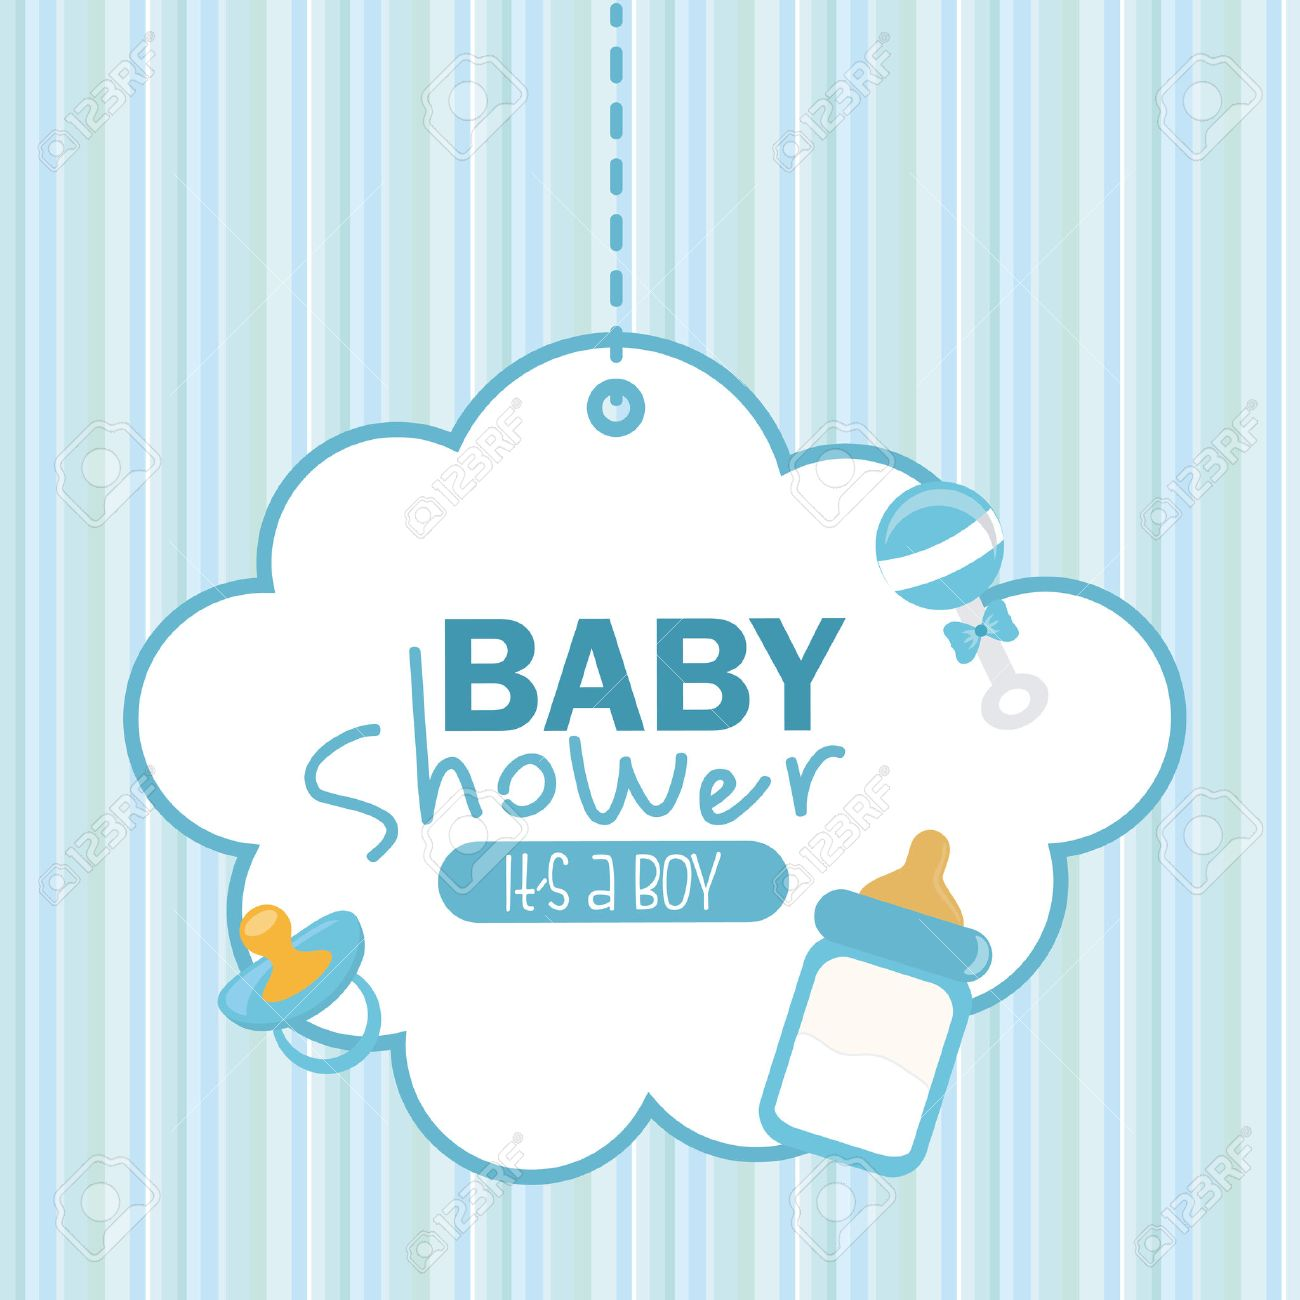 Baby Shower Graphic Design Vector Illustration Royalty Free